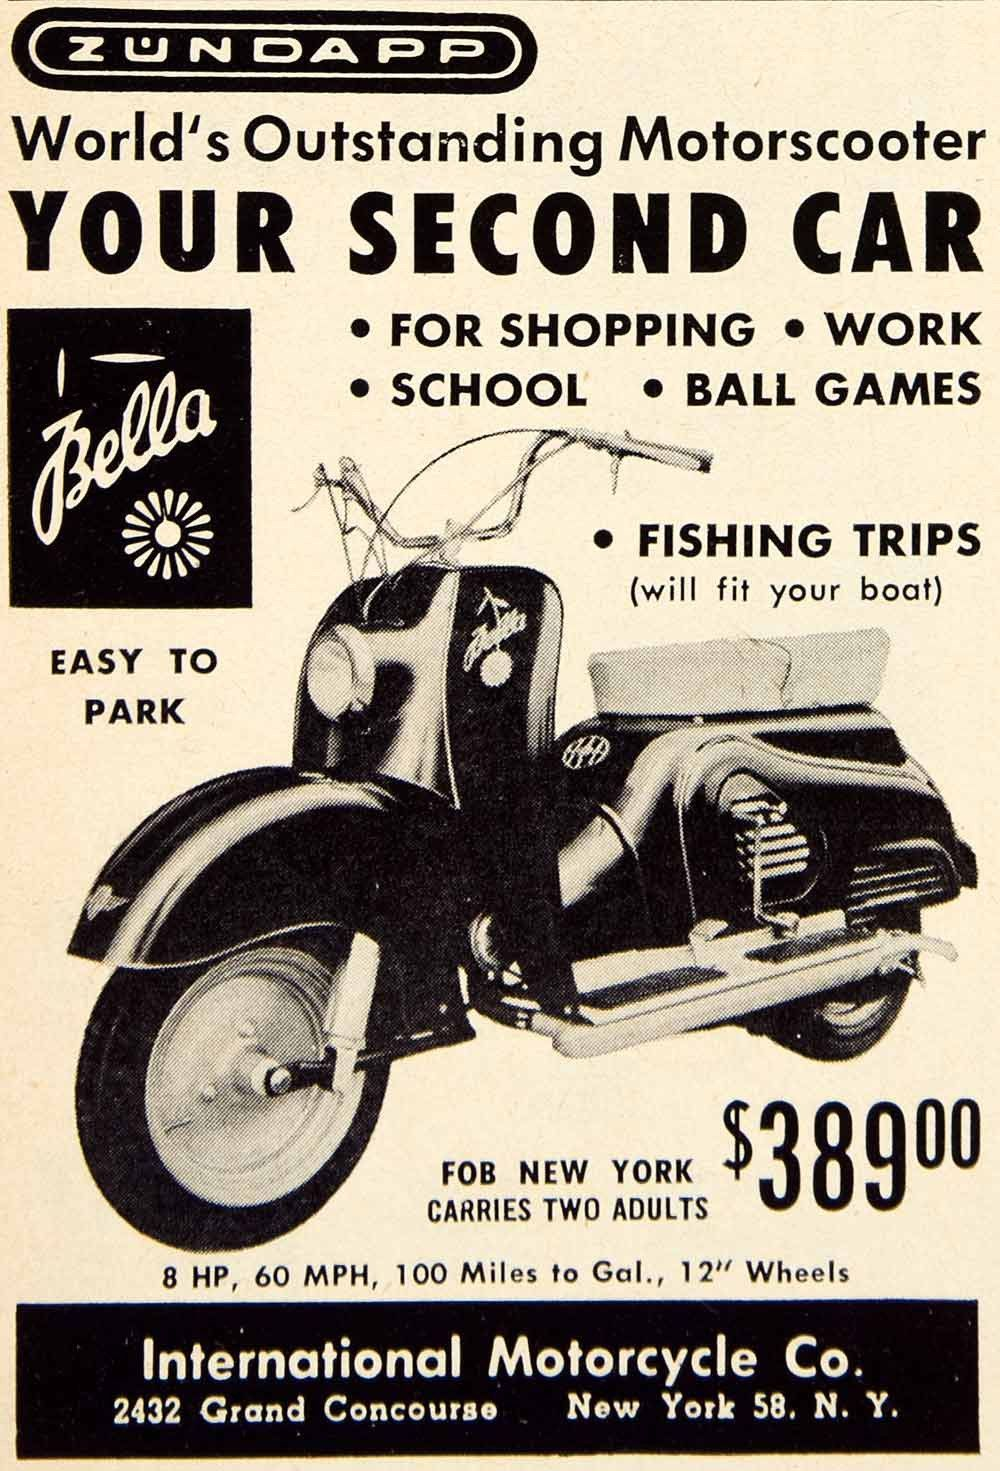 1956 Ad Zundapp Bella Scooter Moped International Motorcycle Transport Scooter Old Ads Motorcycles And Scooter